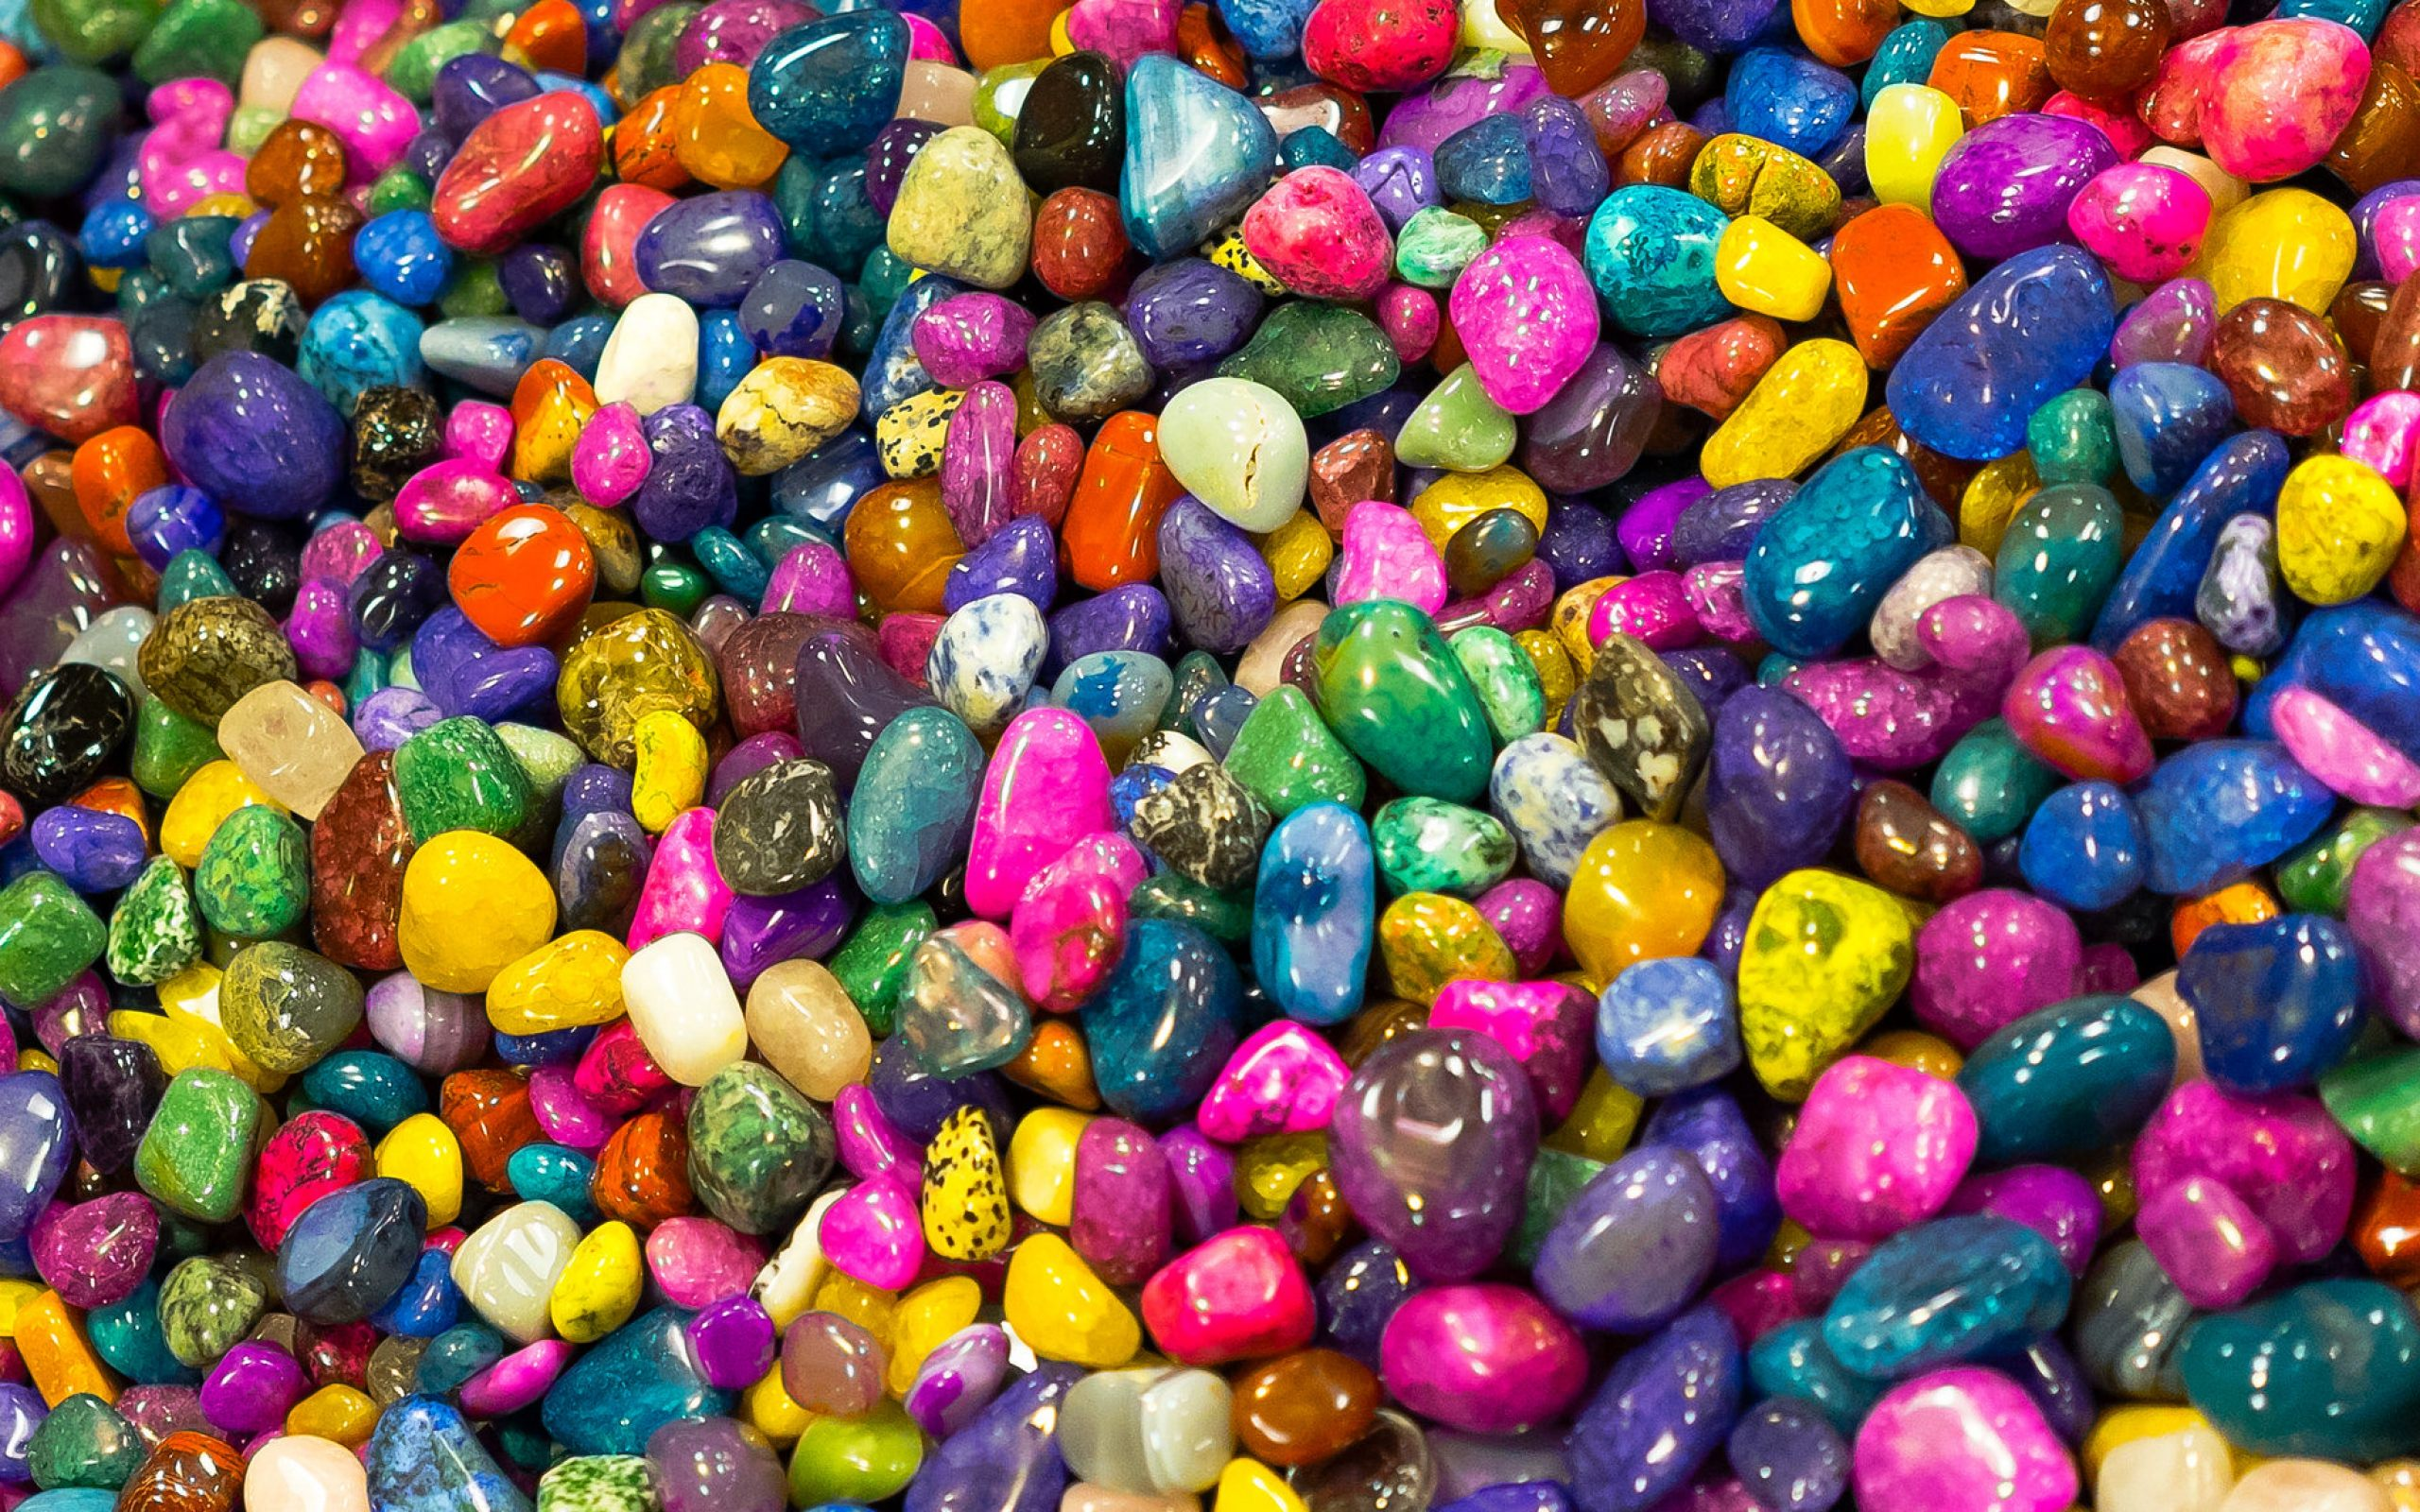 Colored Stones Wallpapers High Quality Download Free